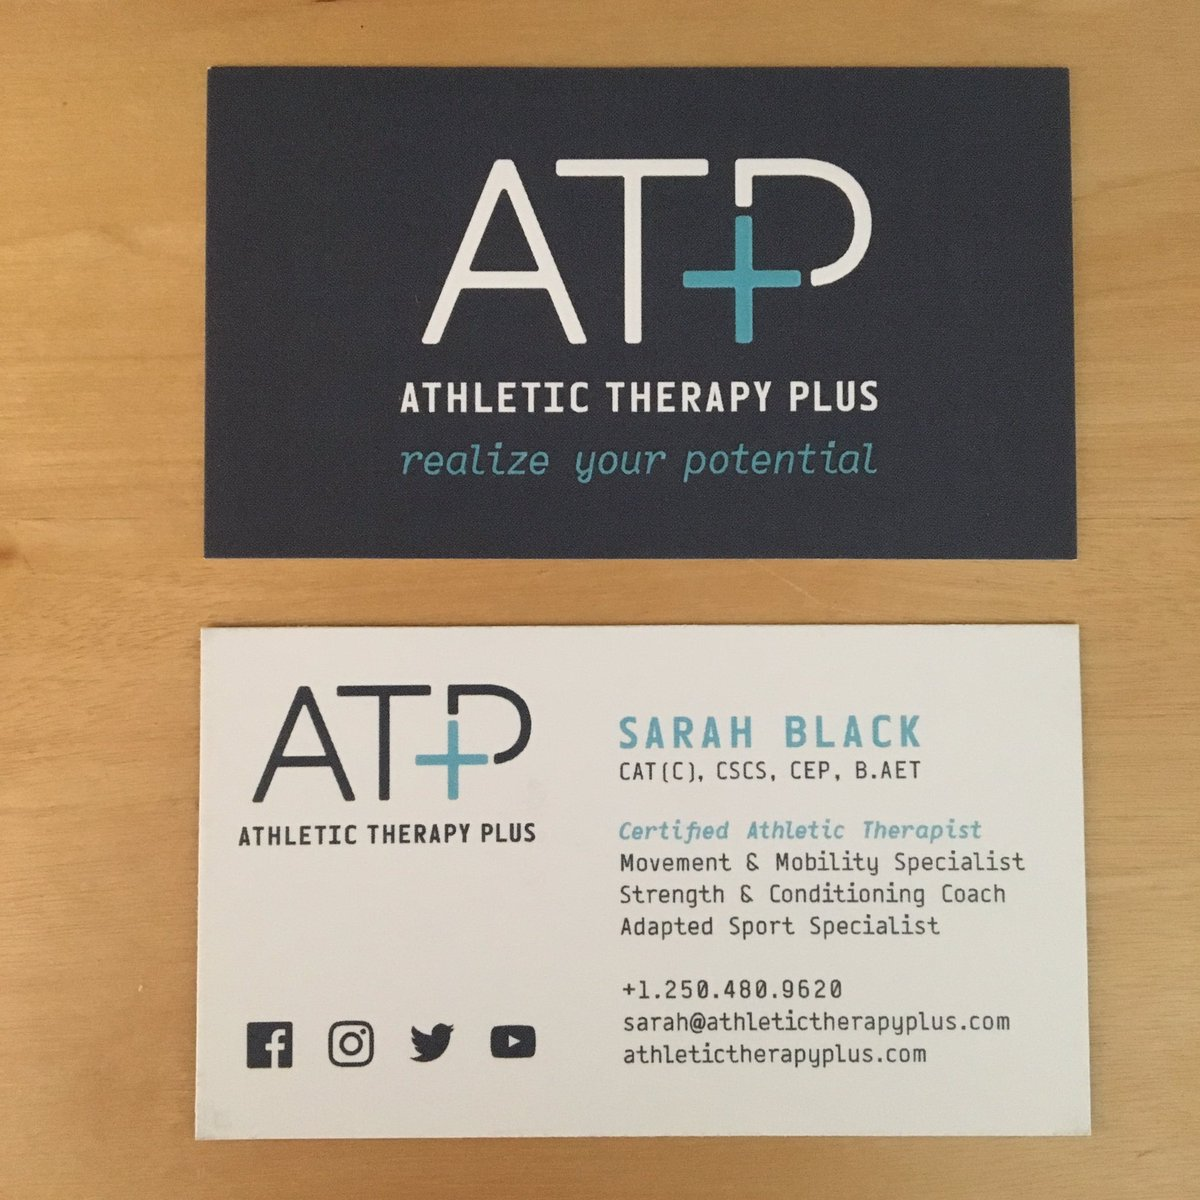 Sarah black on twitter thanks vistaprint for the quality business sarah black on twitter thanks vistaprint for the quality business cards and httpstsirm2q1h80 for the beautiful logo and design reheart Images